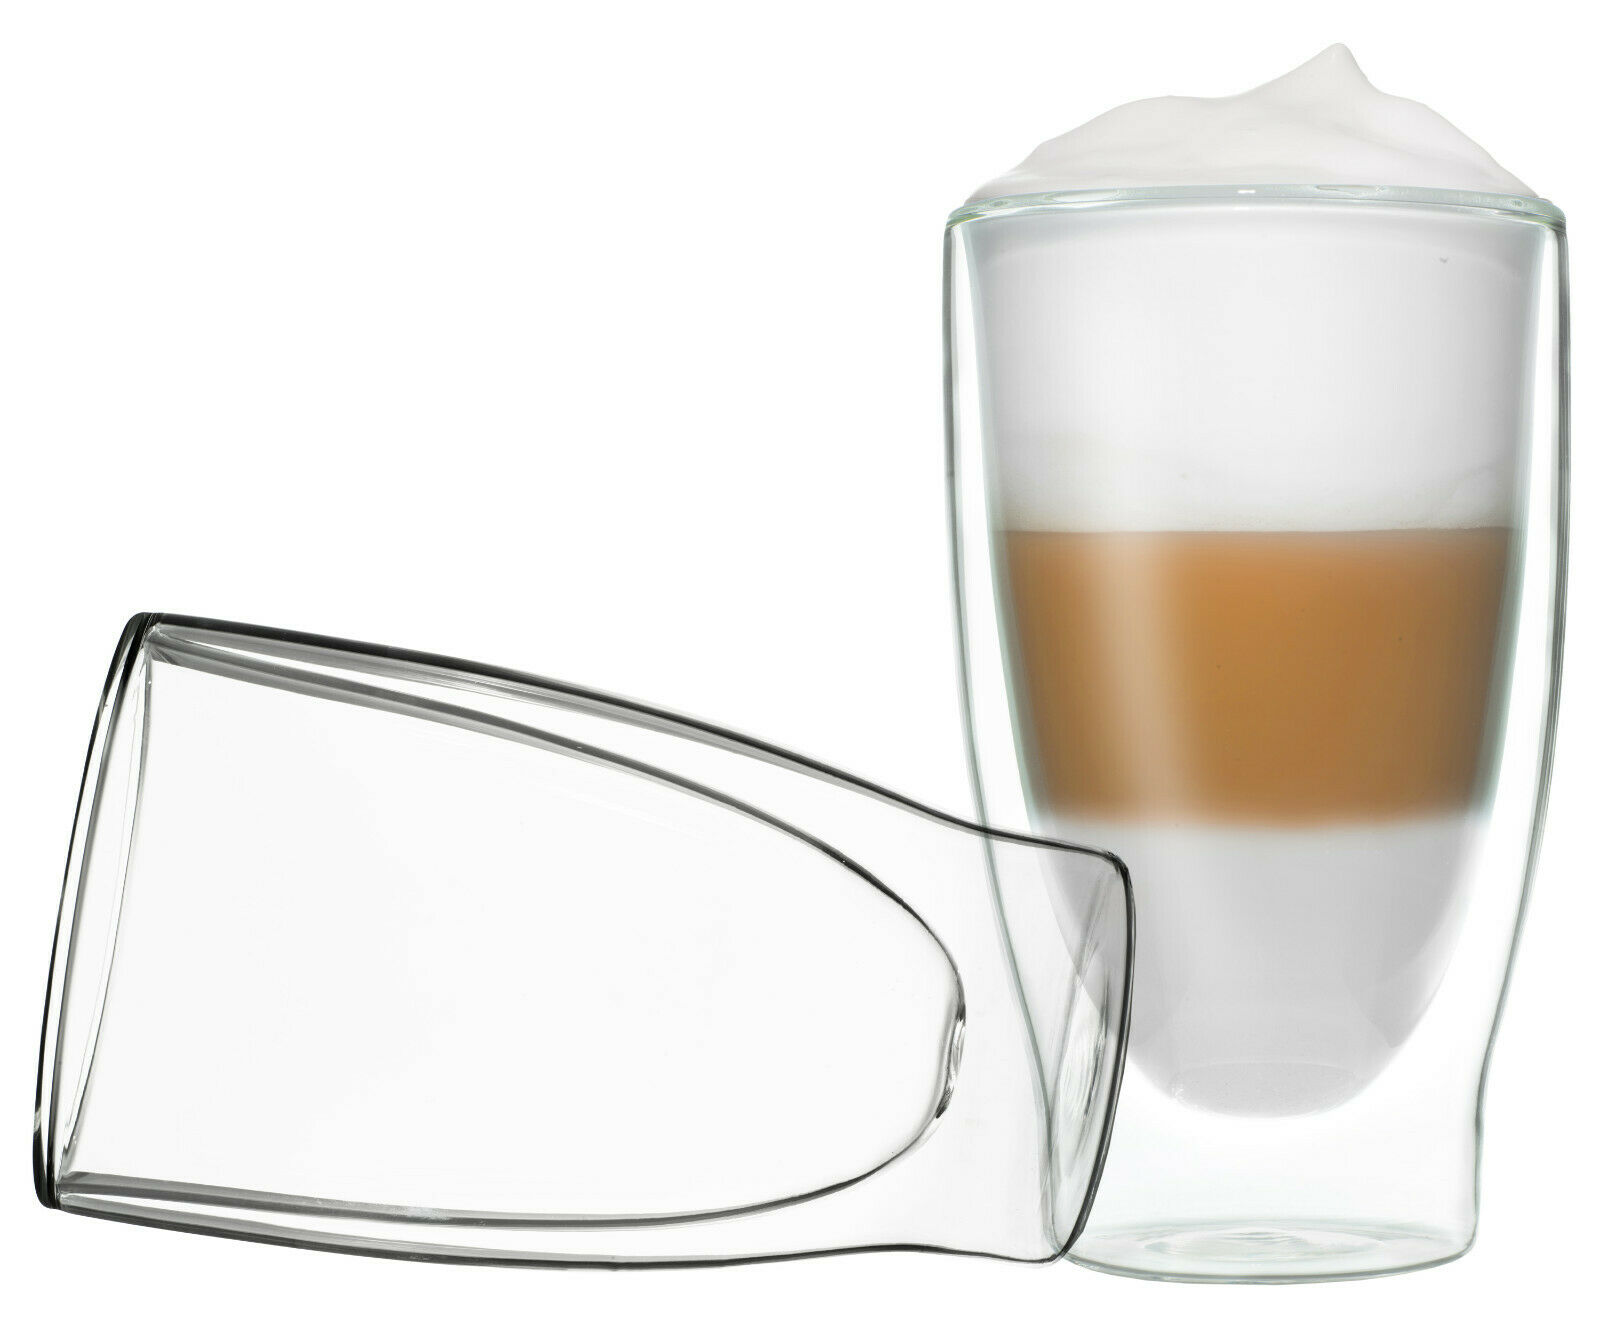 2x 400ML DUOS THERMOGLÄSER DOPPELWANDIG LATTE MACCHIATO COCKTAIL EIS TEE